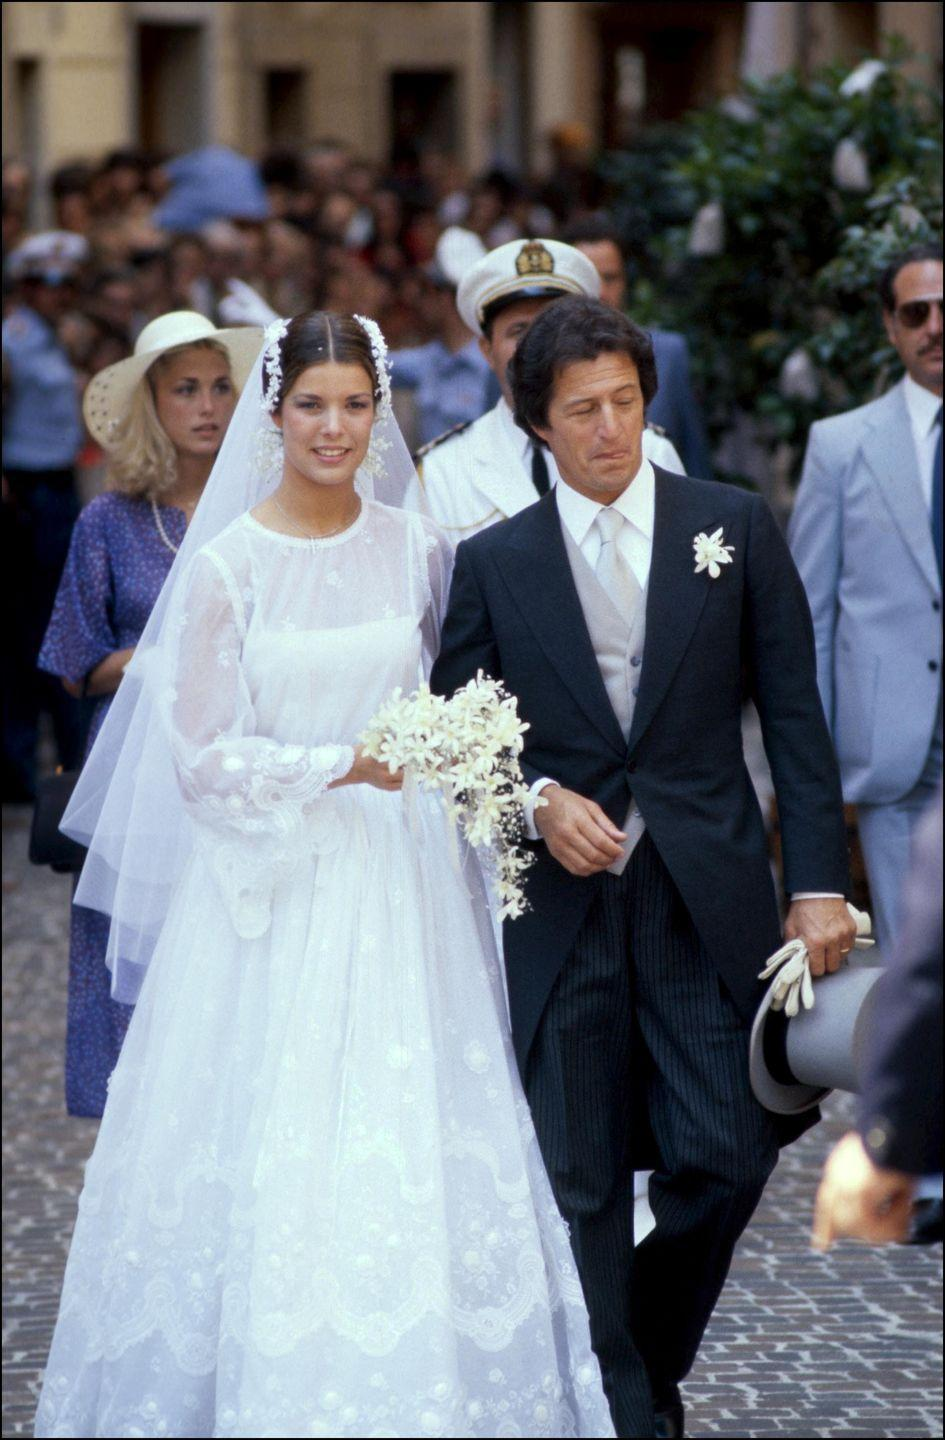 <p>The Princess of Monaco looked ethereal in a lace dress with bell sleeves by Marc Bohan for Dior when she wed Philippe Junot in 1978. </p>